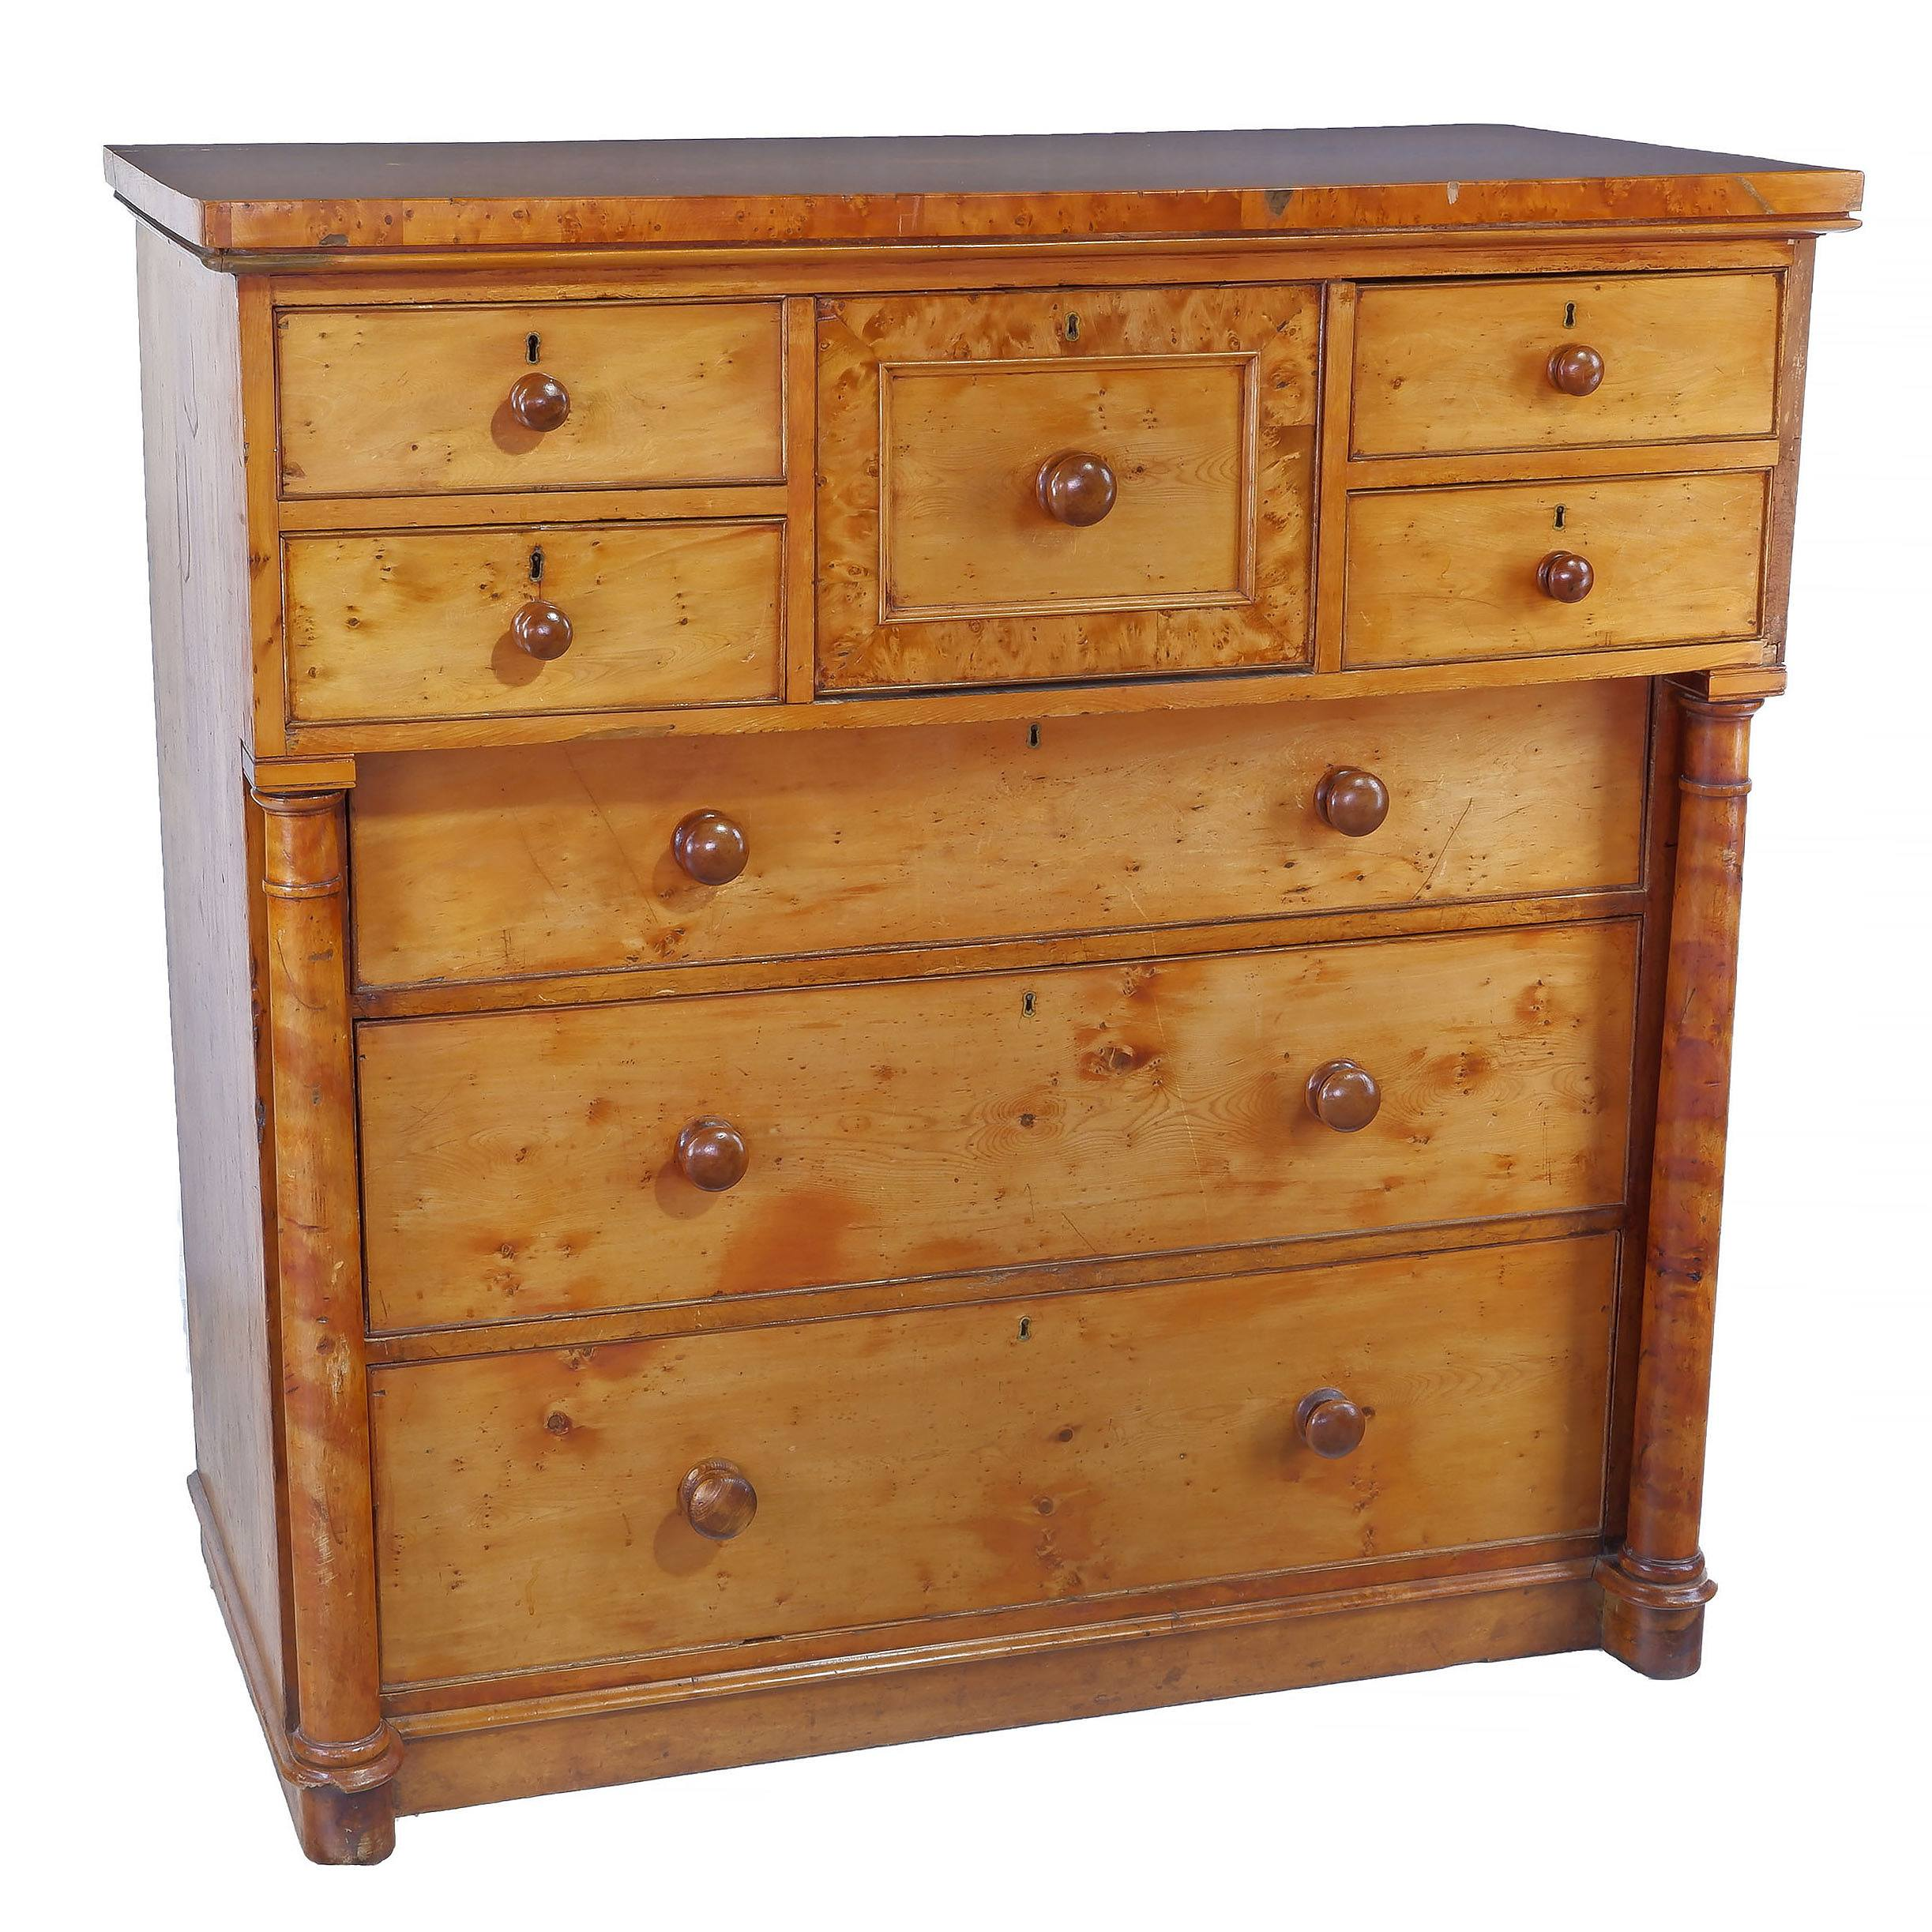 'Rare Tasmanian Huon Pine Chest of Drawers Circa 1850-1860'